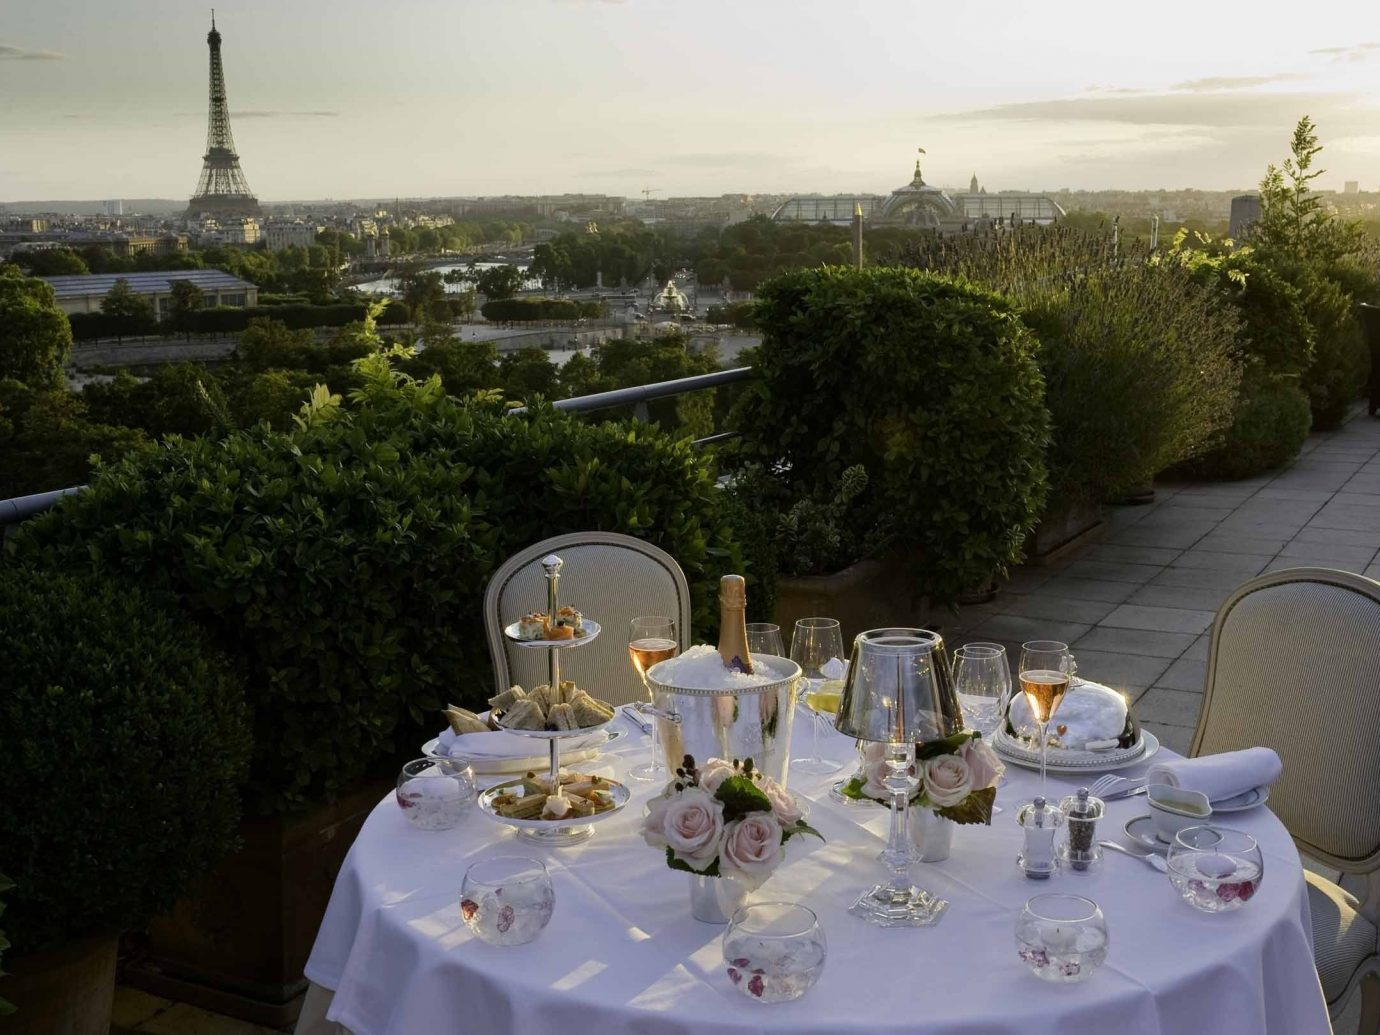 France Hotels Luxury Travel Paris tree outdoor meal flower dining table